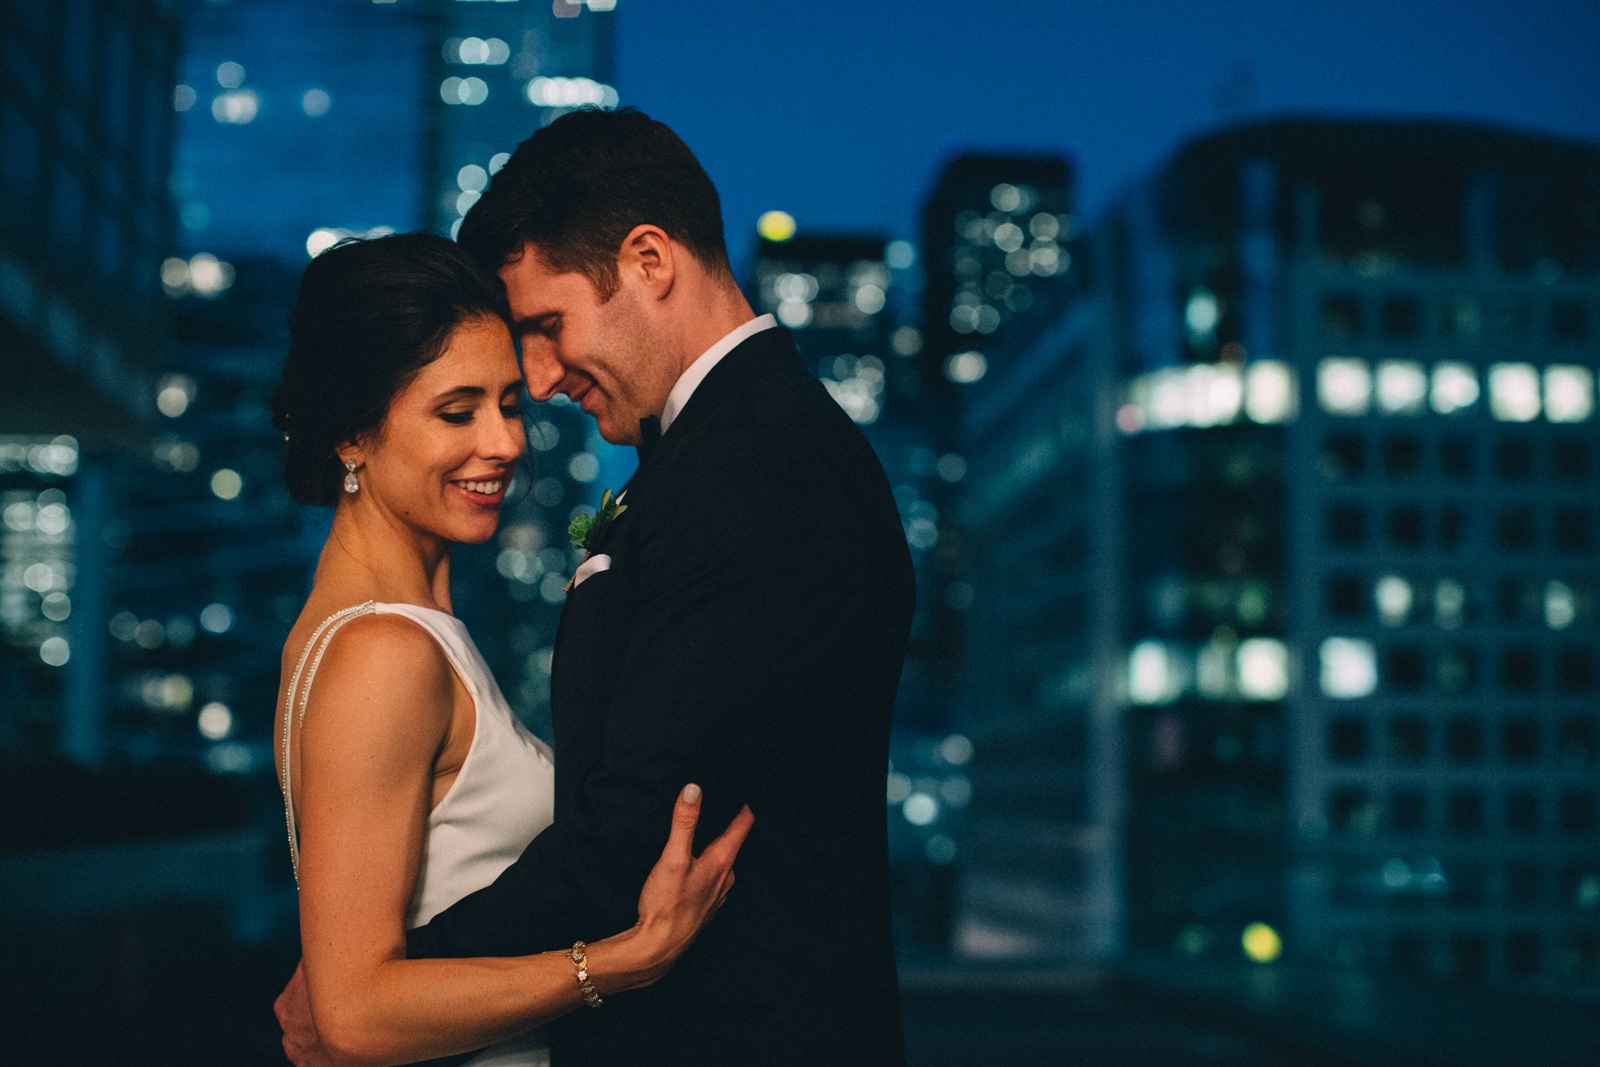 Malaparte-wedding-photography-Toronto-by-Sam-Wong-of-Visual-Cravings_78